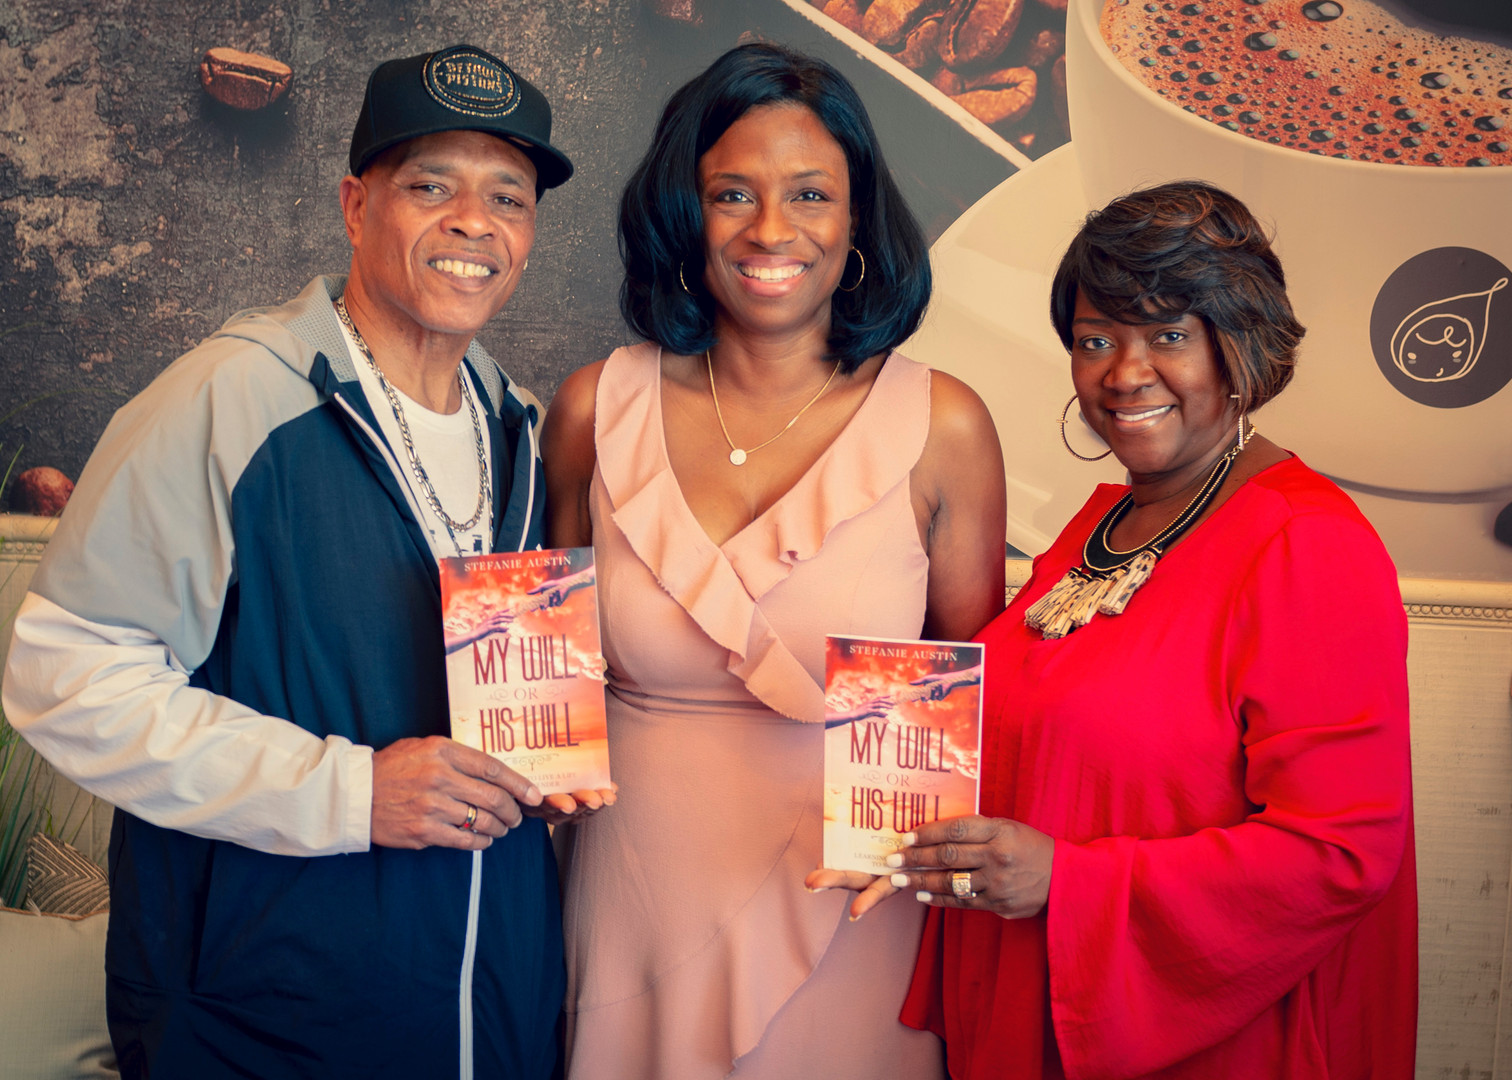 The Websters receive autographed book of Stefanie Austin